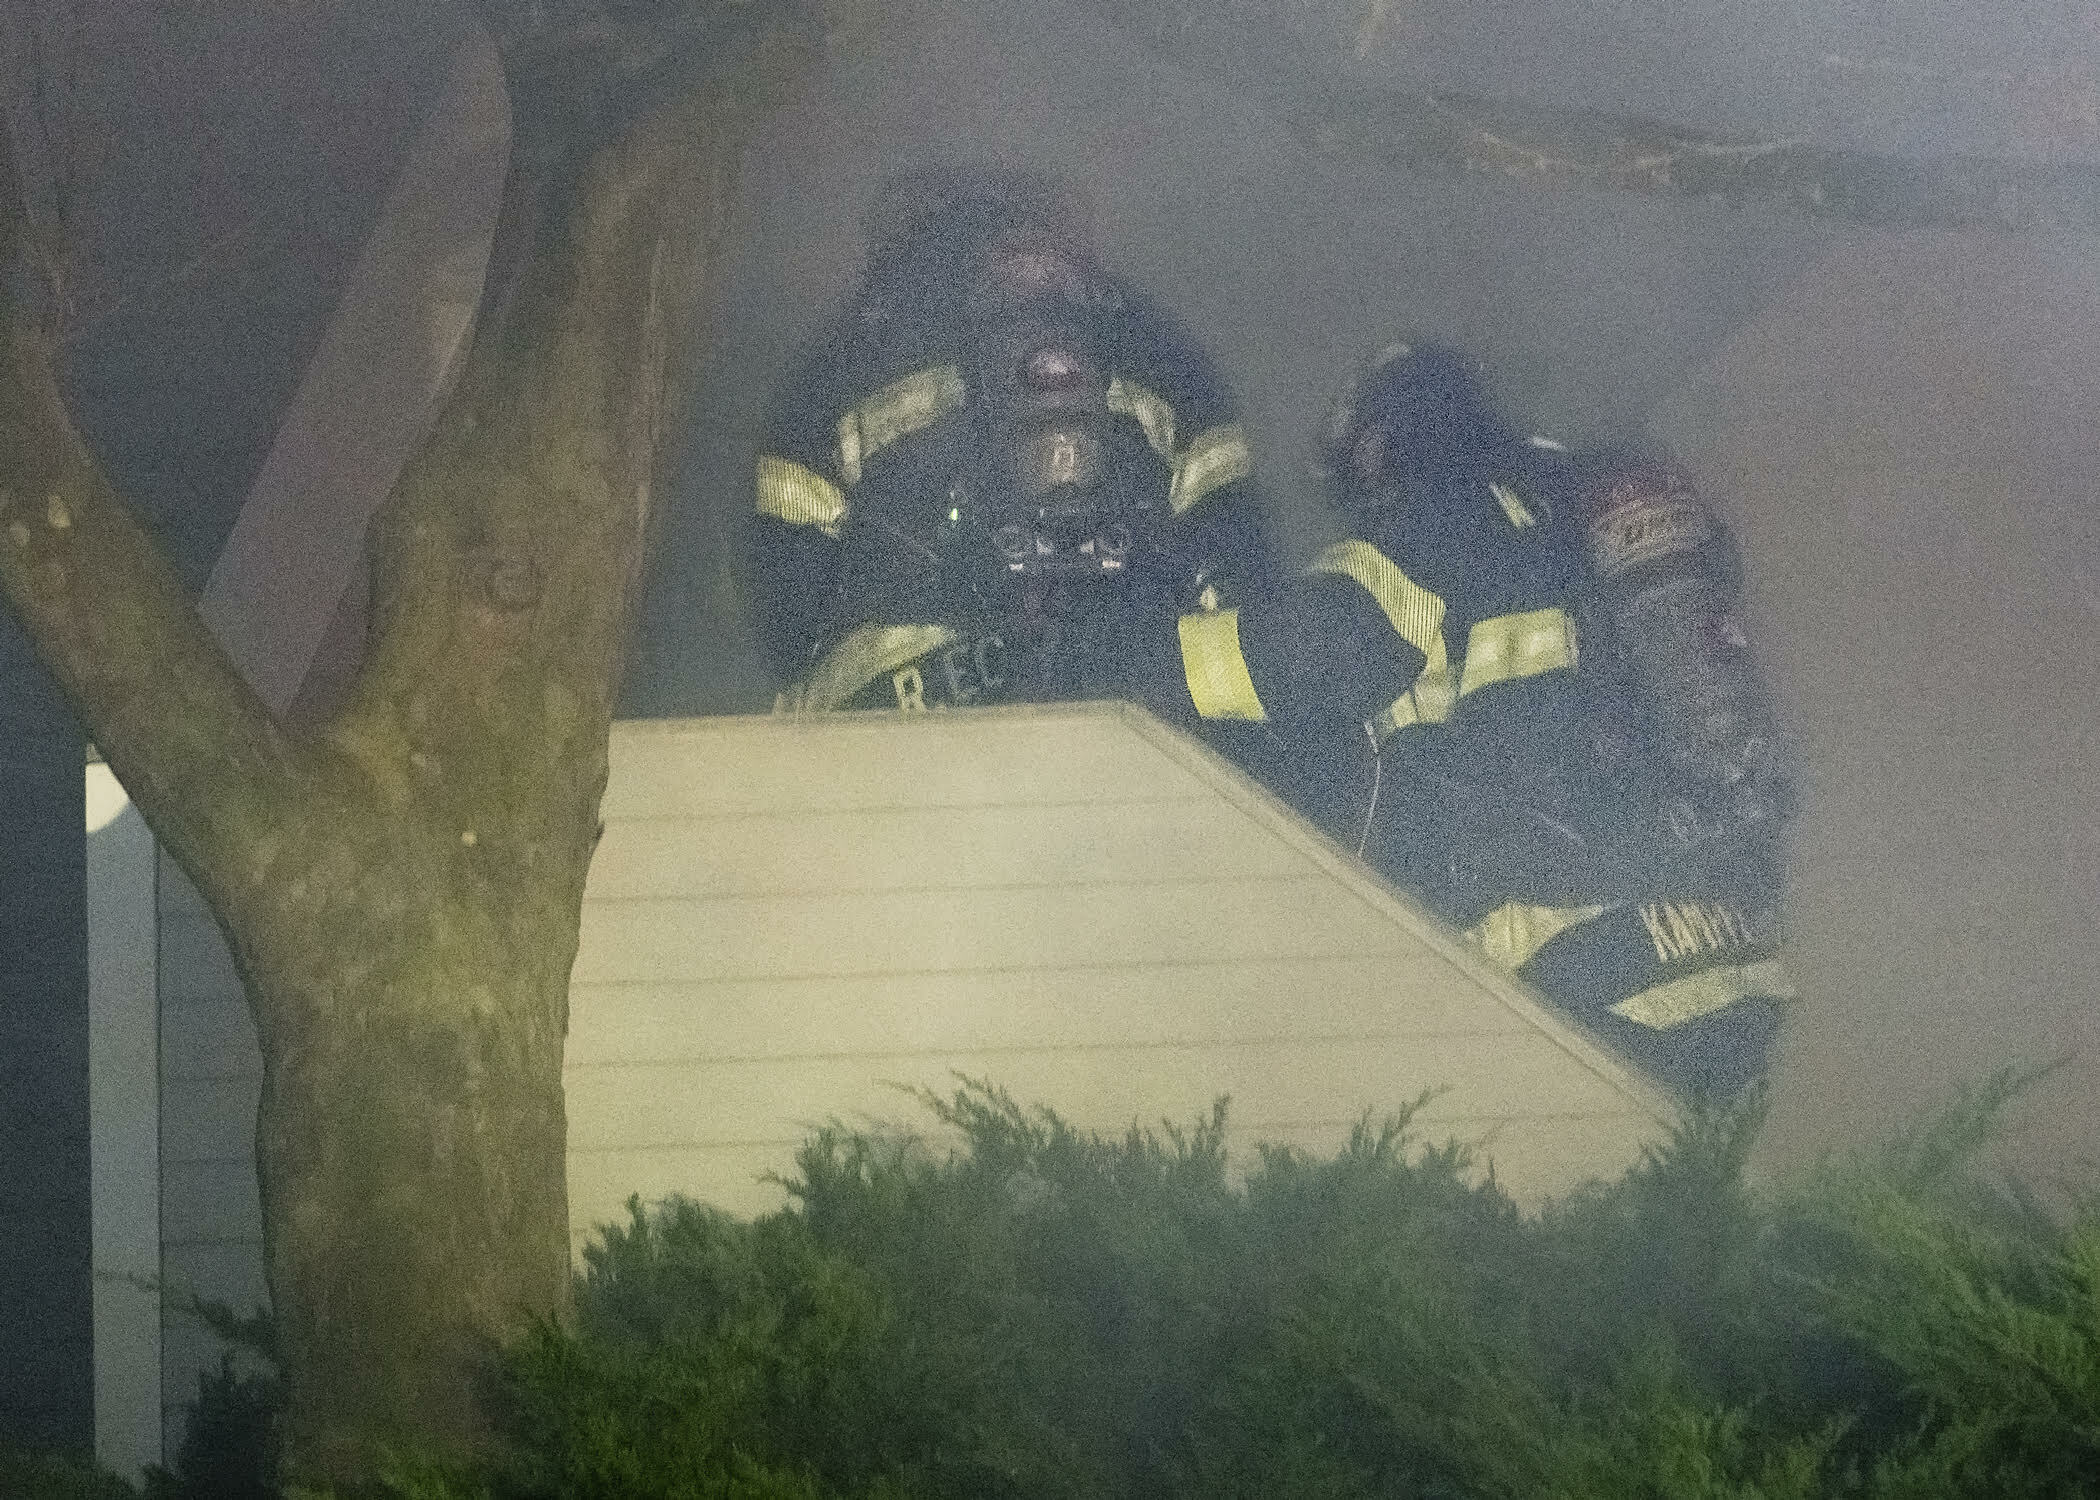 Firefighters encountered heavy smoke conditions upon their arrival. COURTESY WESTHAMPTON BEACH FIRE DEPARTMENT